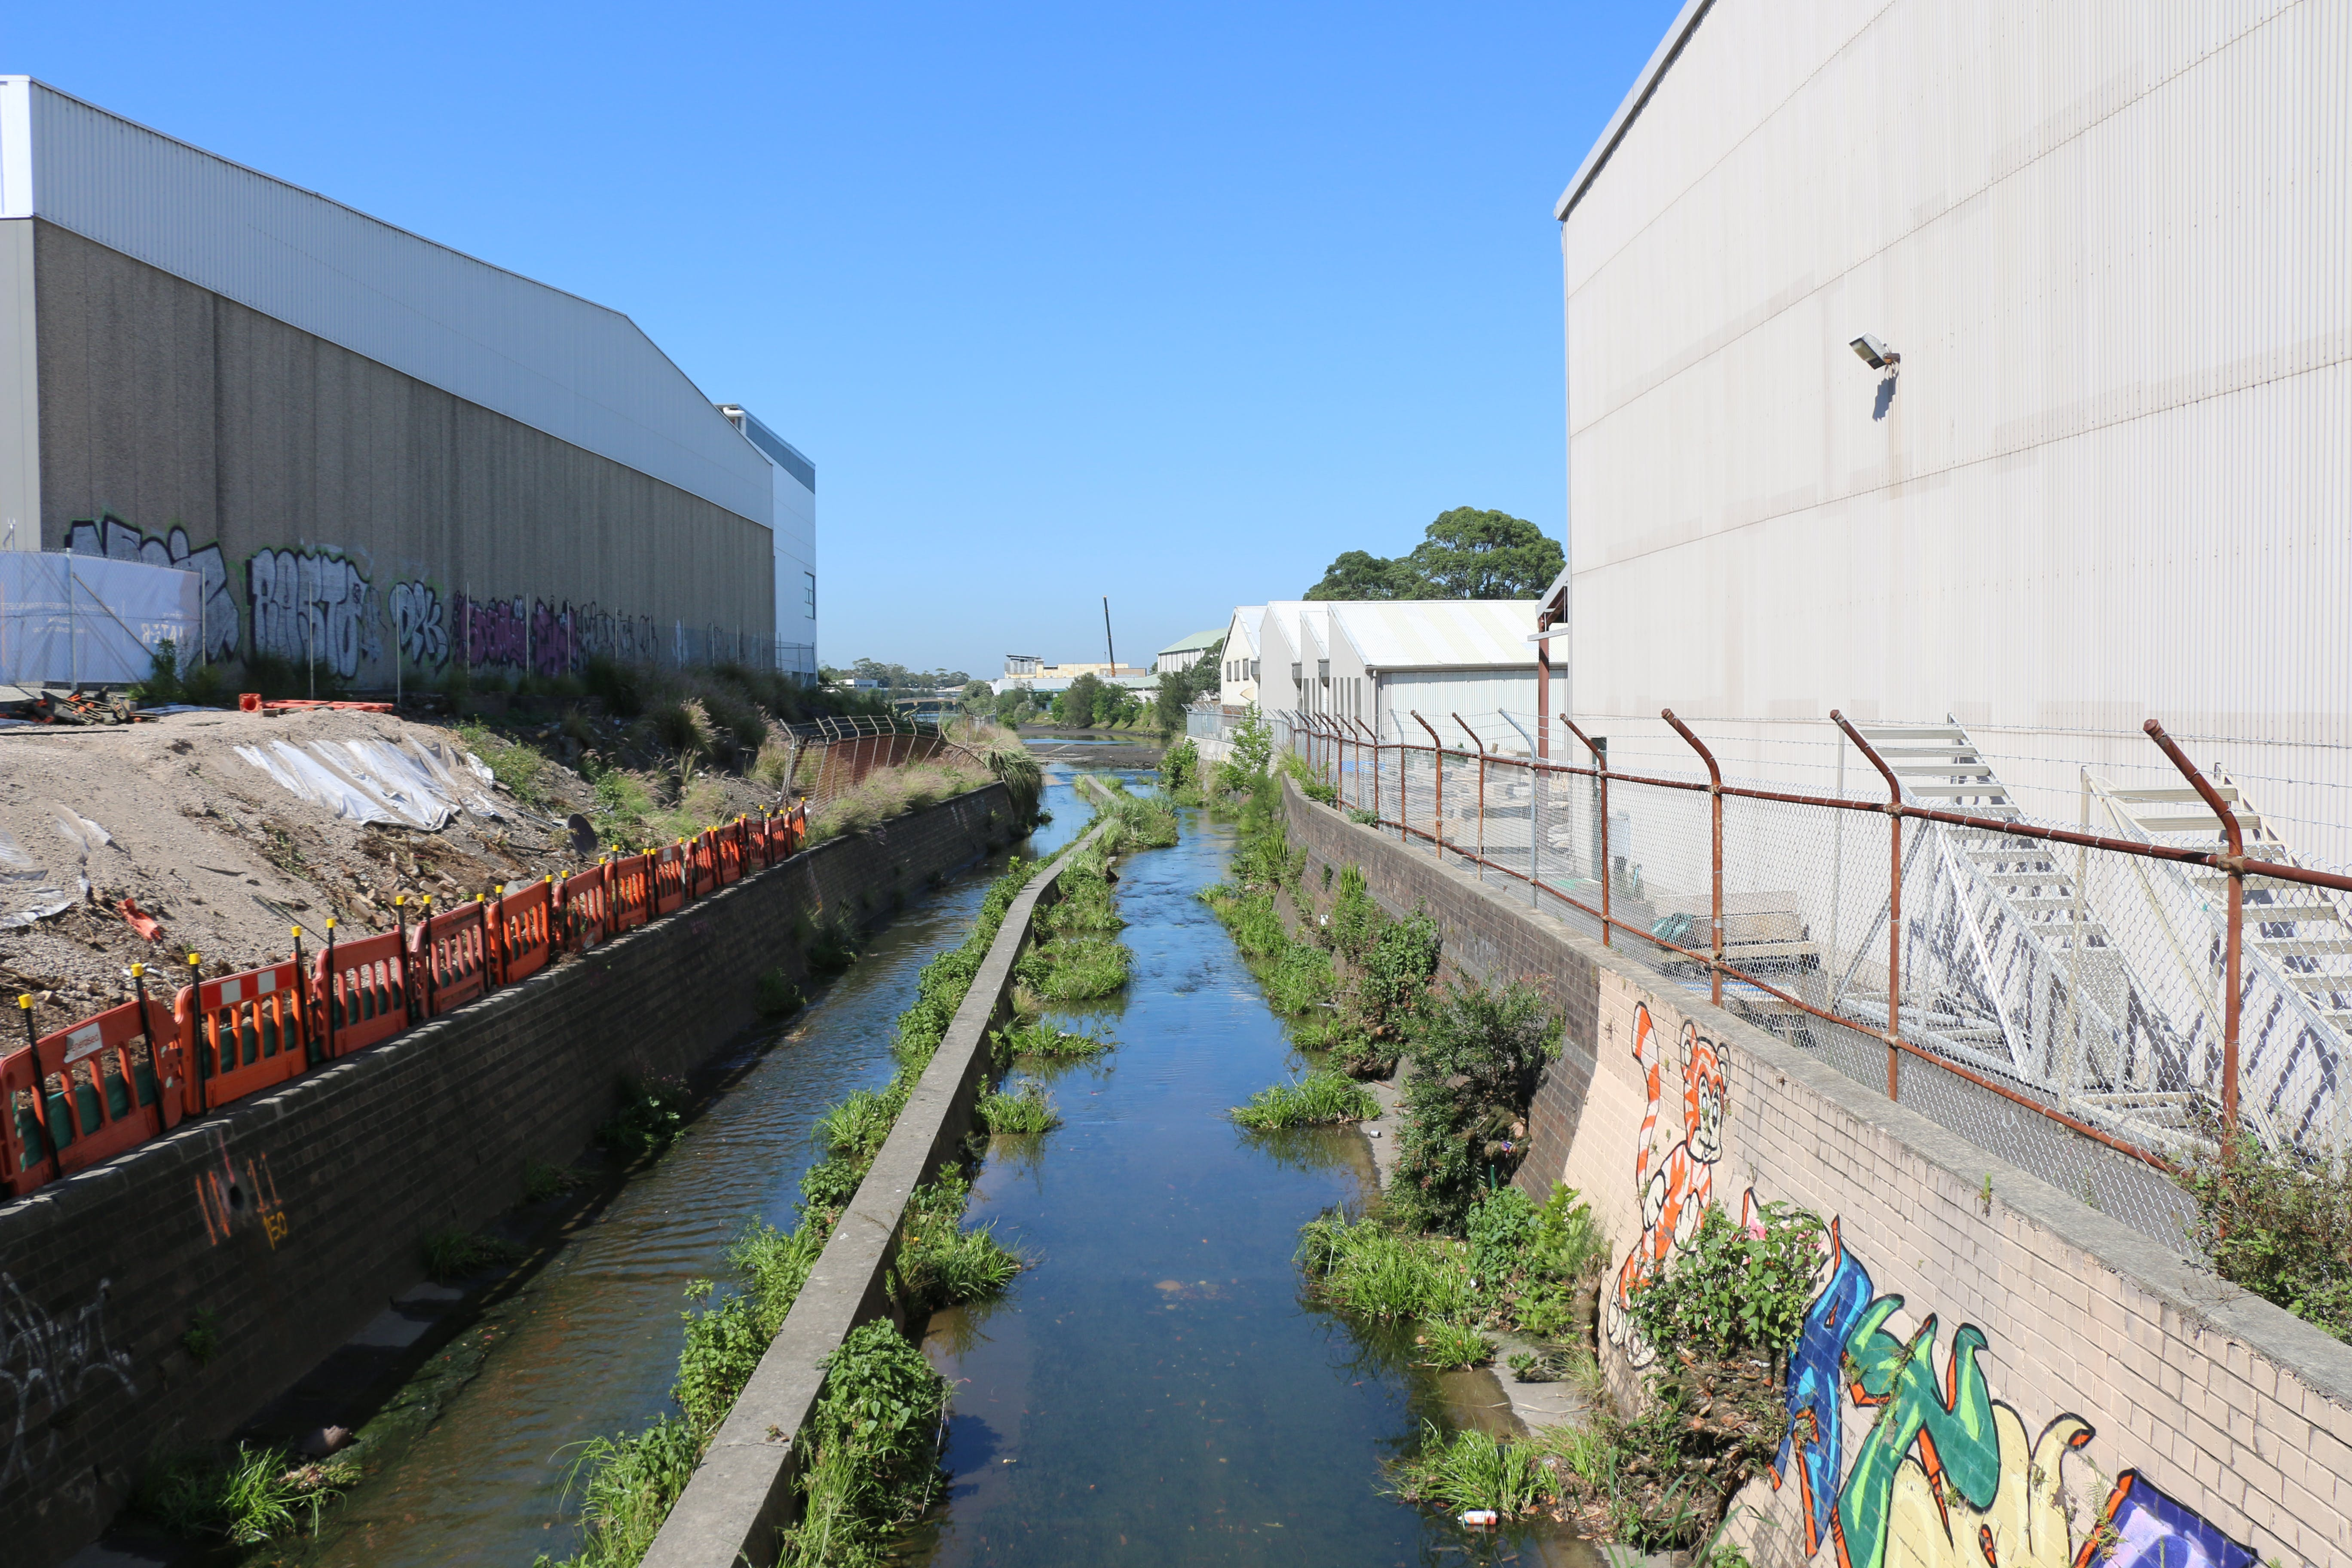 Sheas Creek Stormwater Channel, between Huntley Street and Alexandra Canal in Alexandria